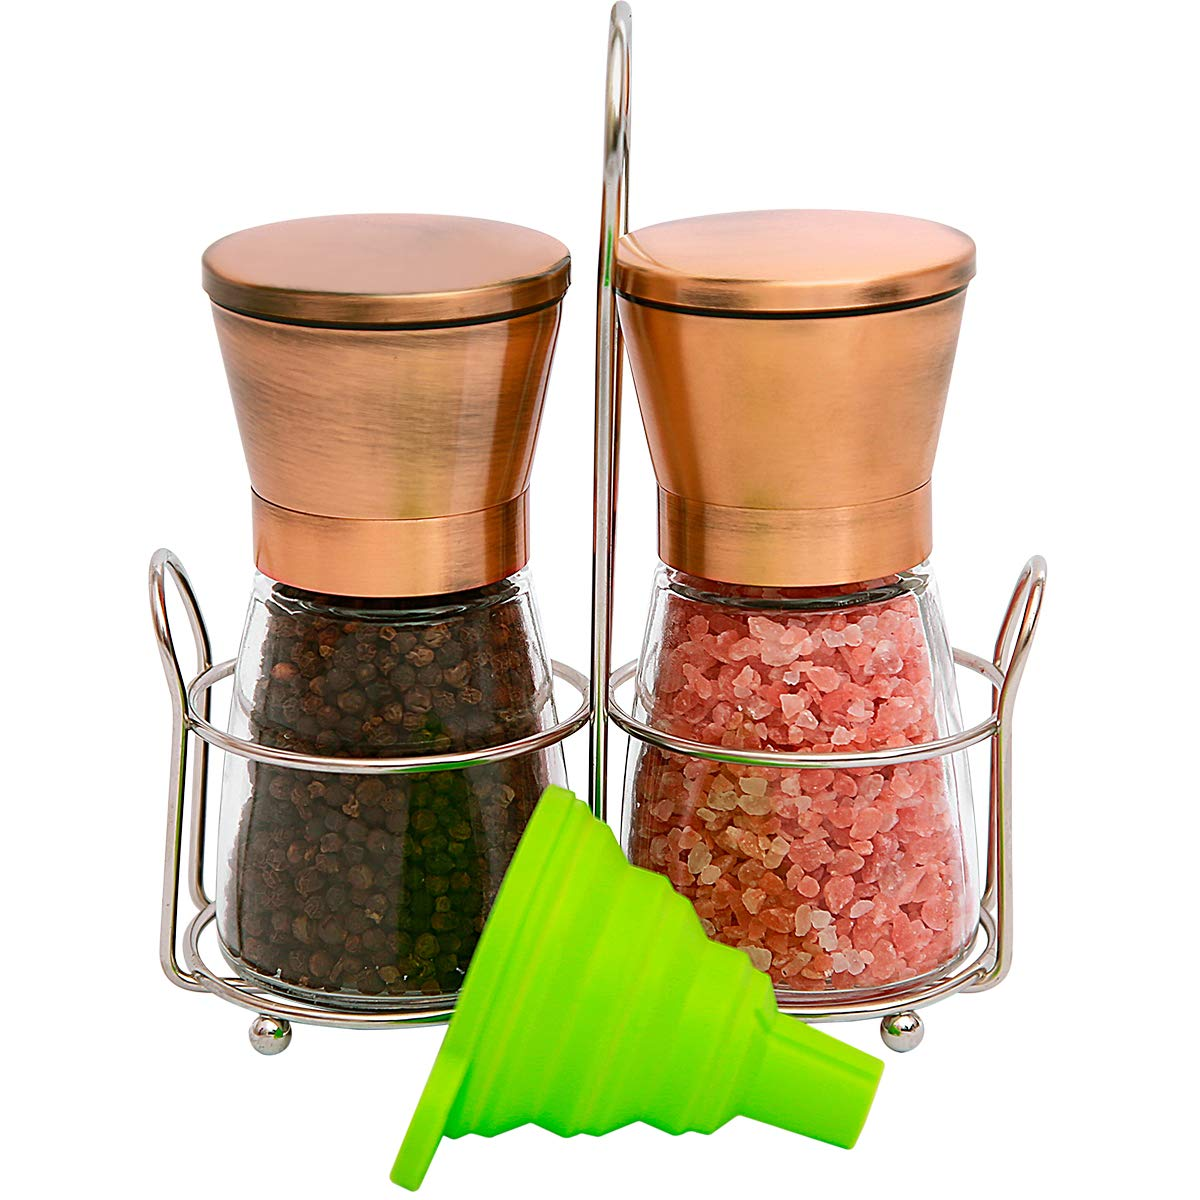 Copper Stainless Steel Salt and Pepper Grinder Set with Stand|Manual Himalayan Pink Salt Mill|Salt and Pepper Shakers with Adjustable Coarseness and Clear Glass Body (Pack of 2) Molion C001